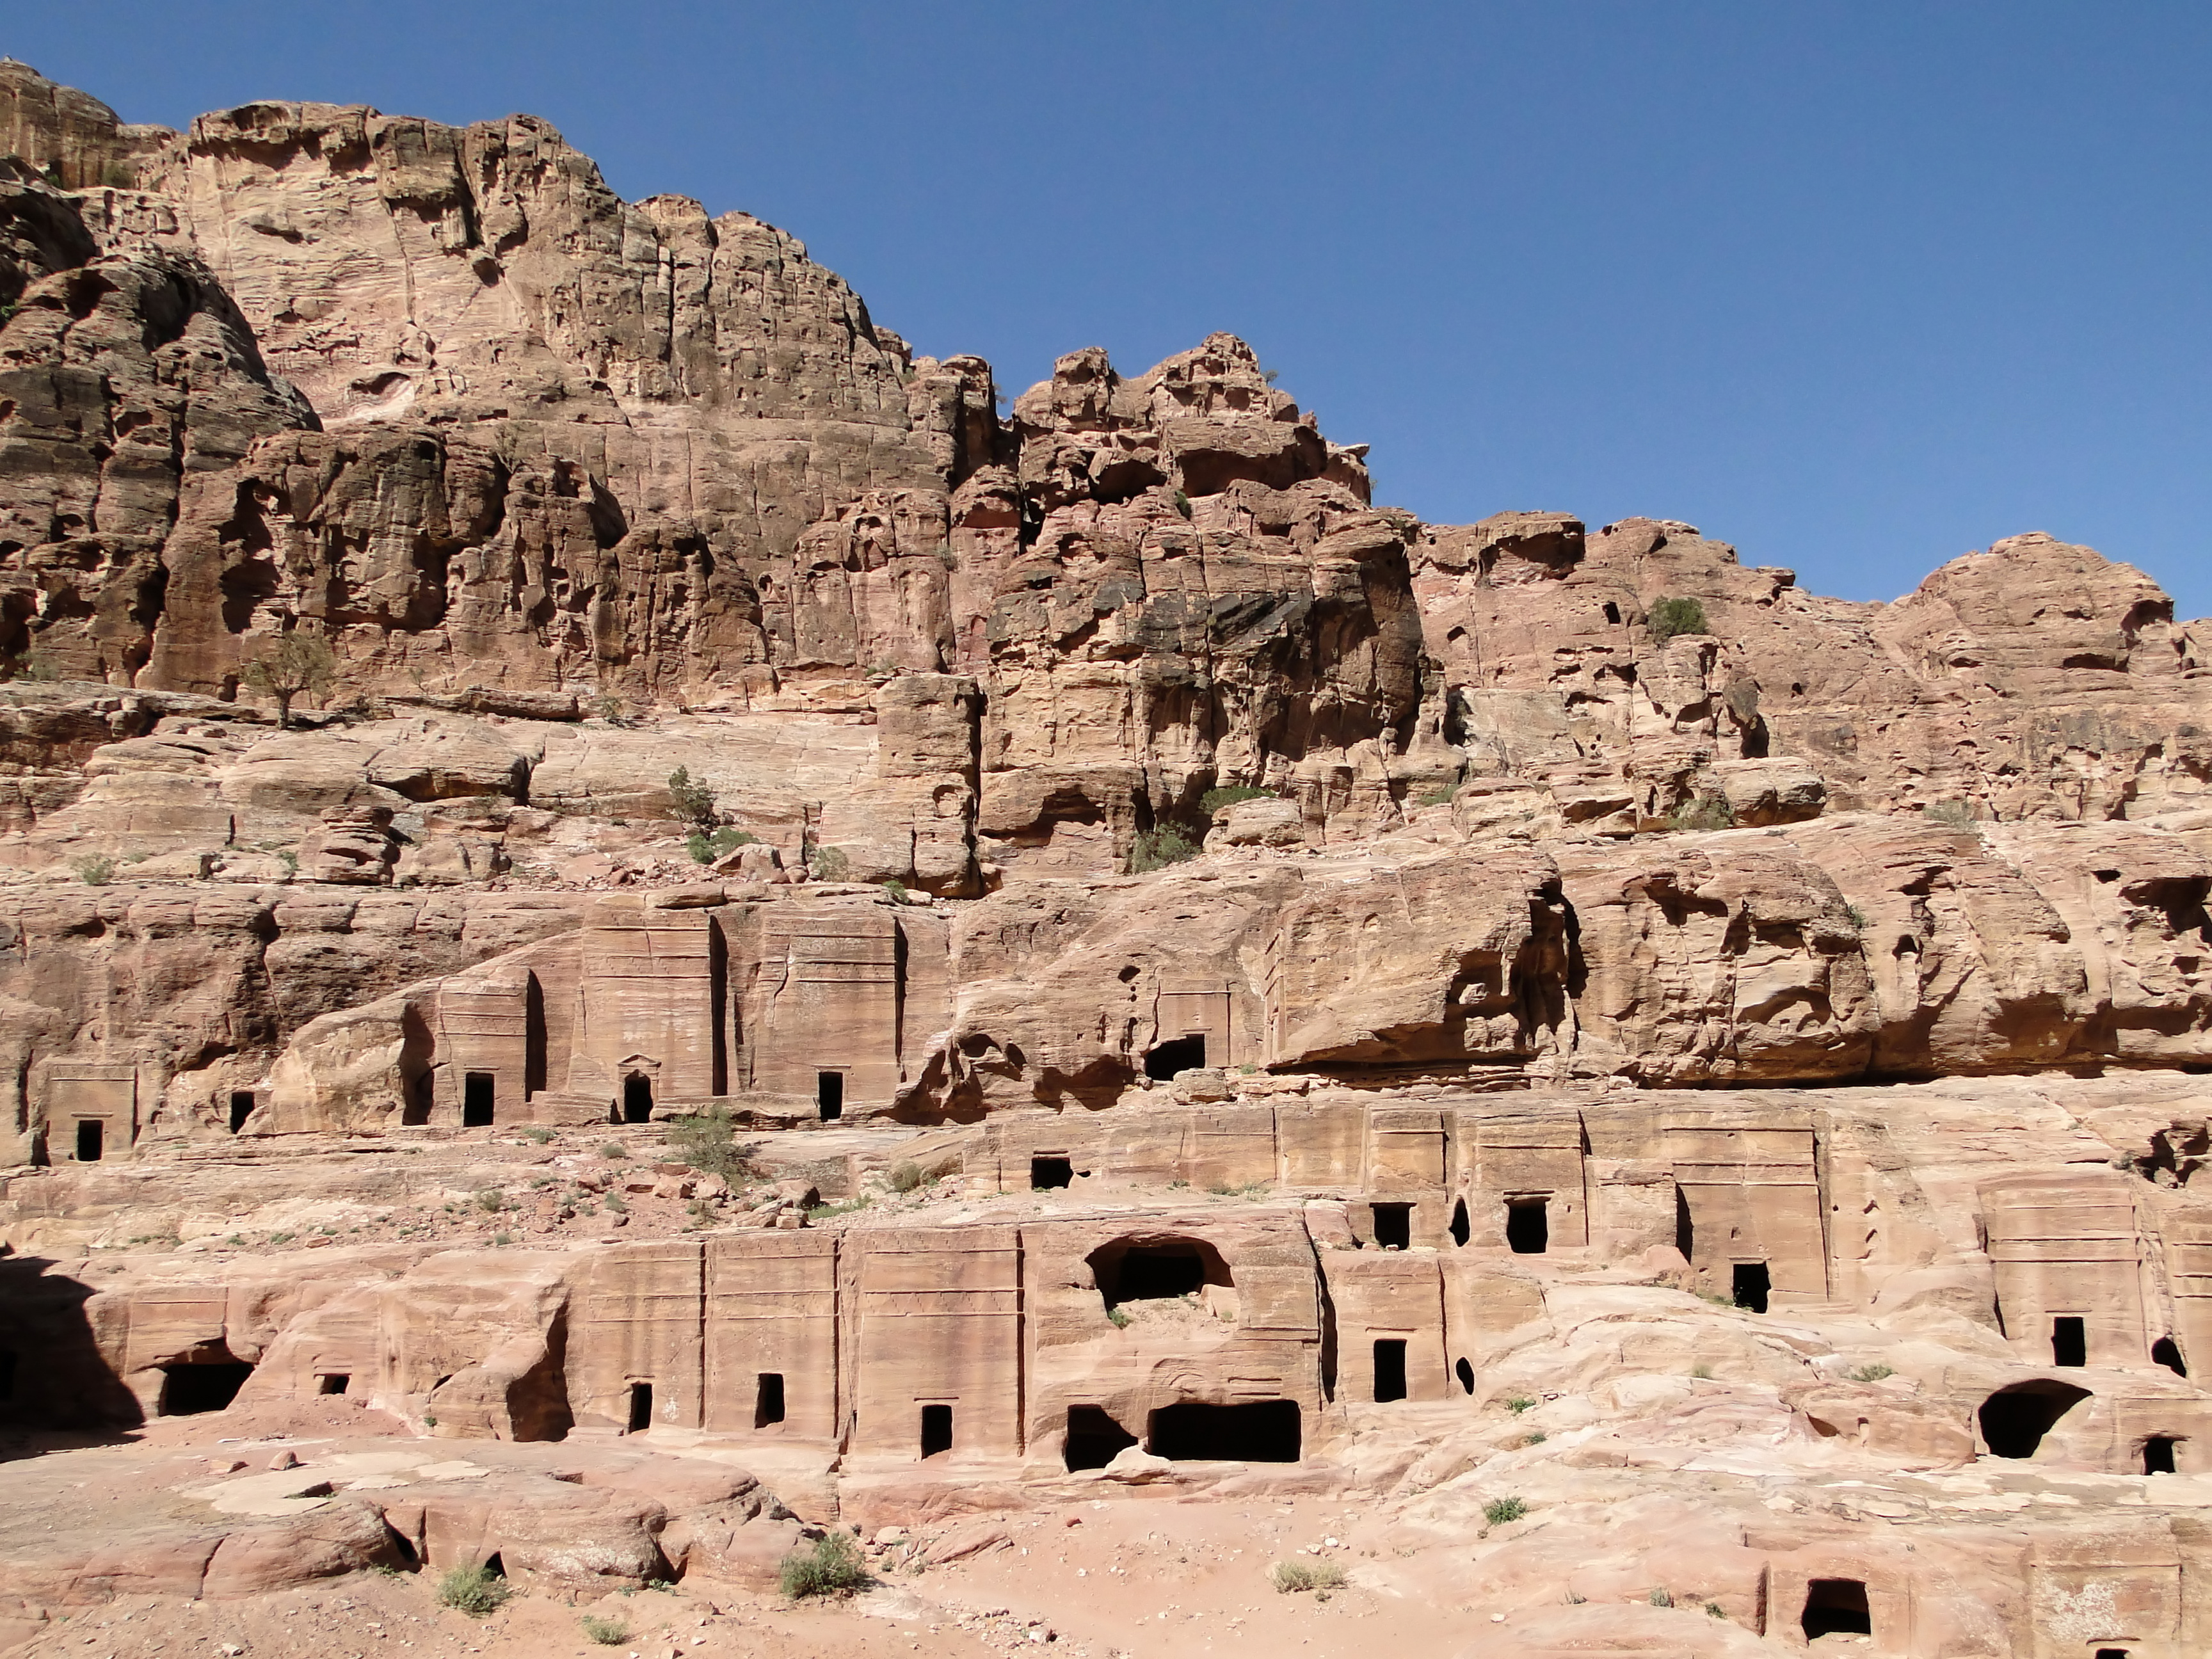 http://upload.wikimedia.org/wikipedia/commons/5/55/Street_of_Facades,_Petra.jpg